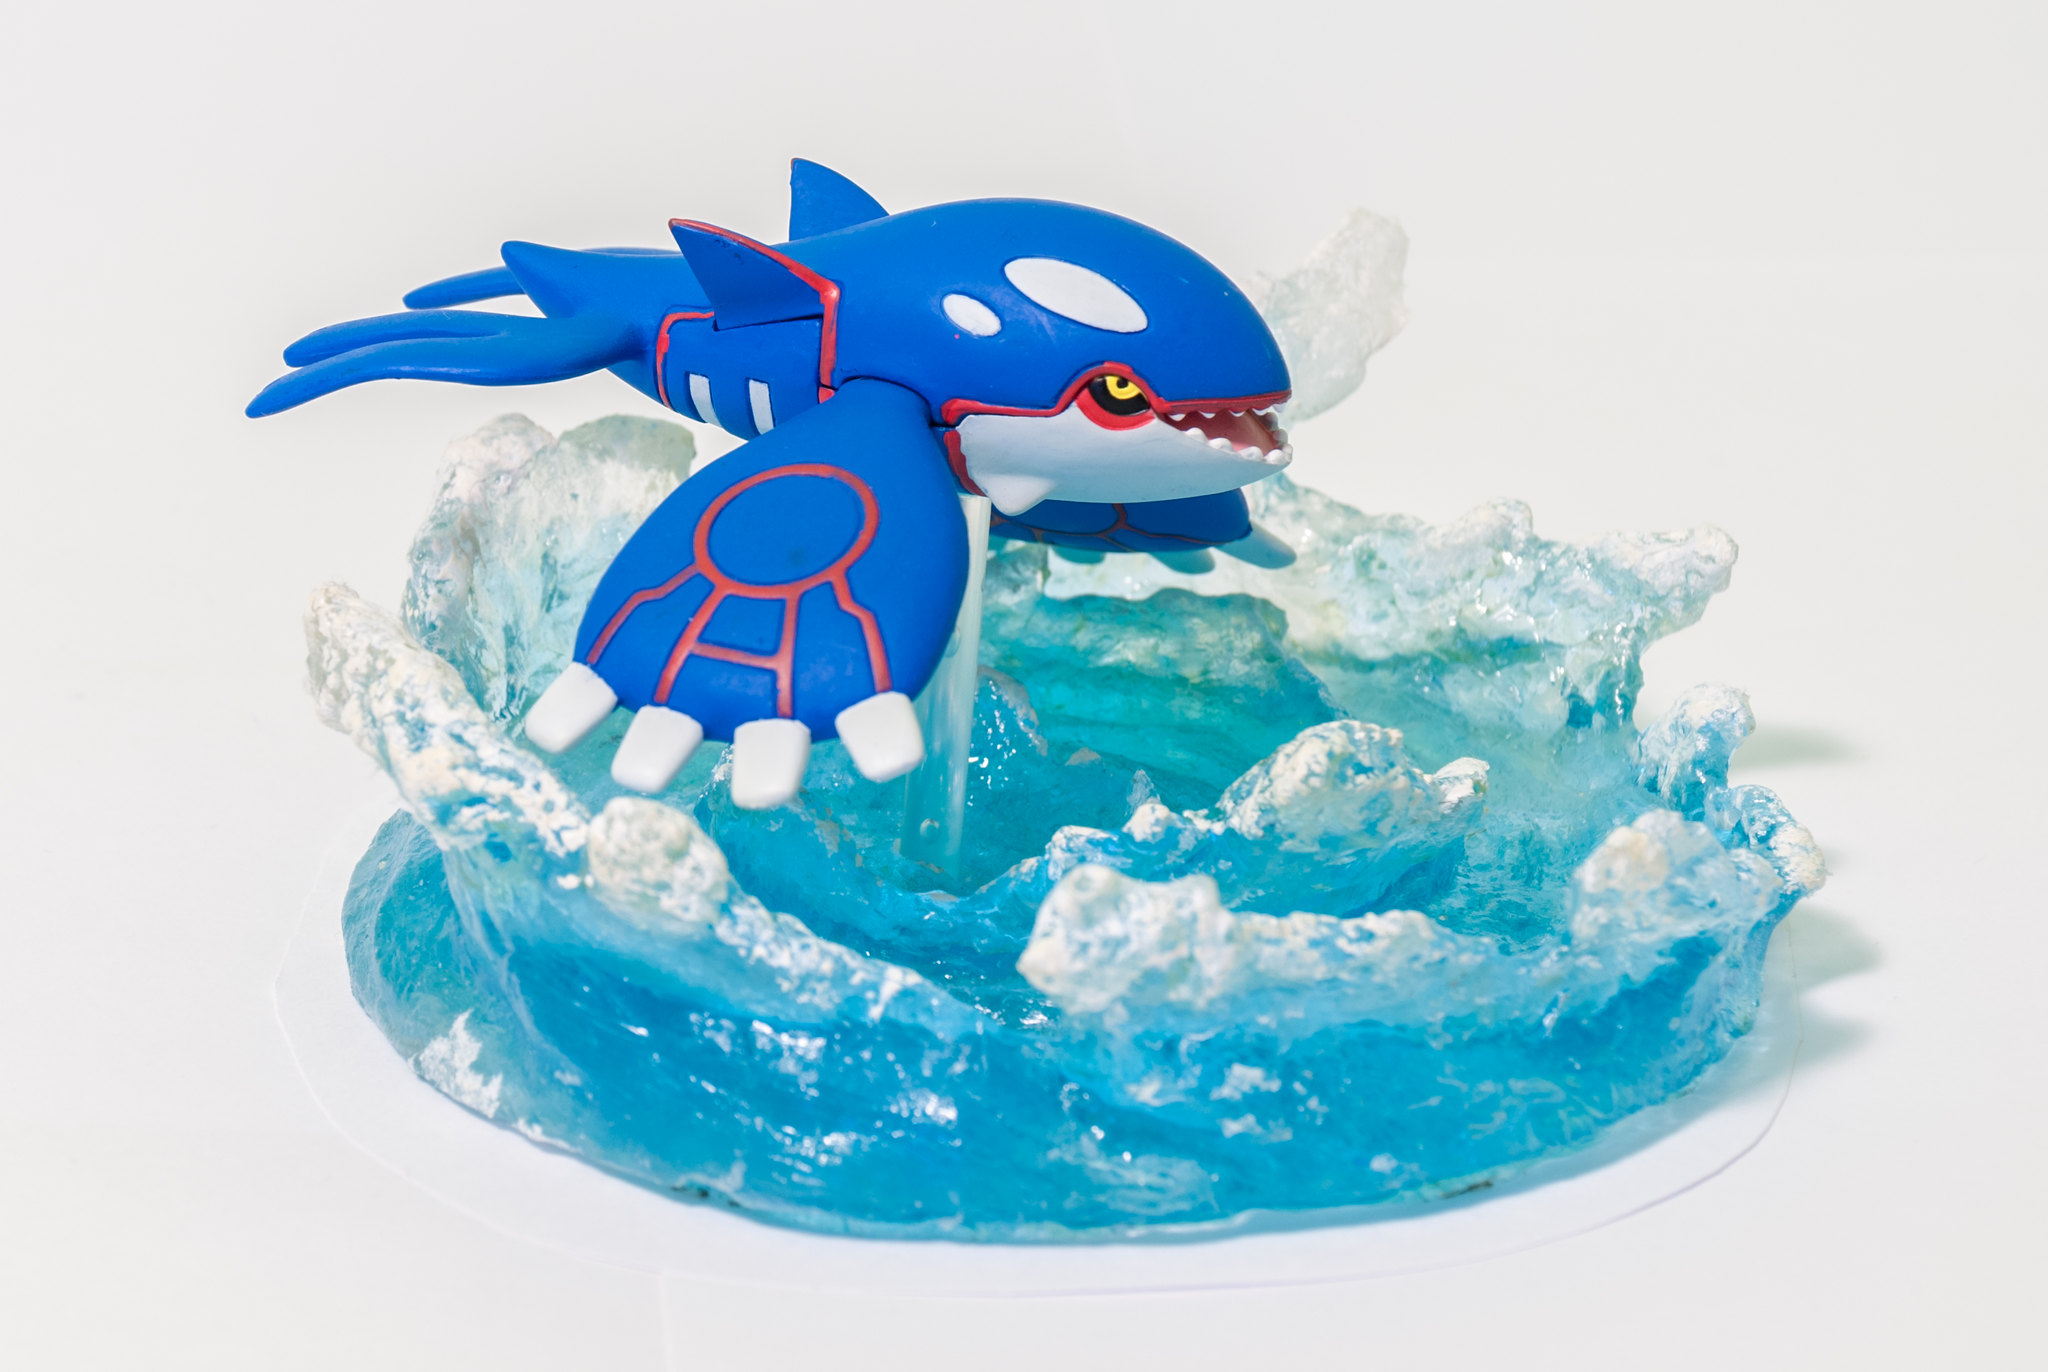 Sticky base for Kyogre